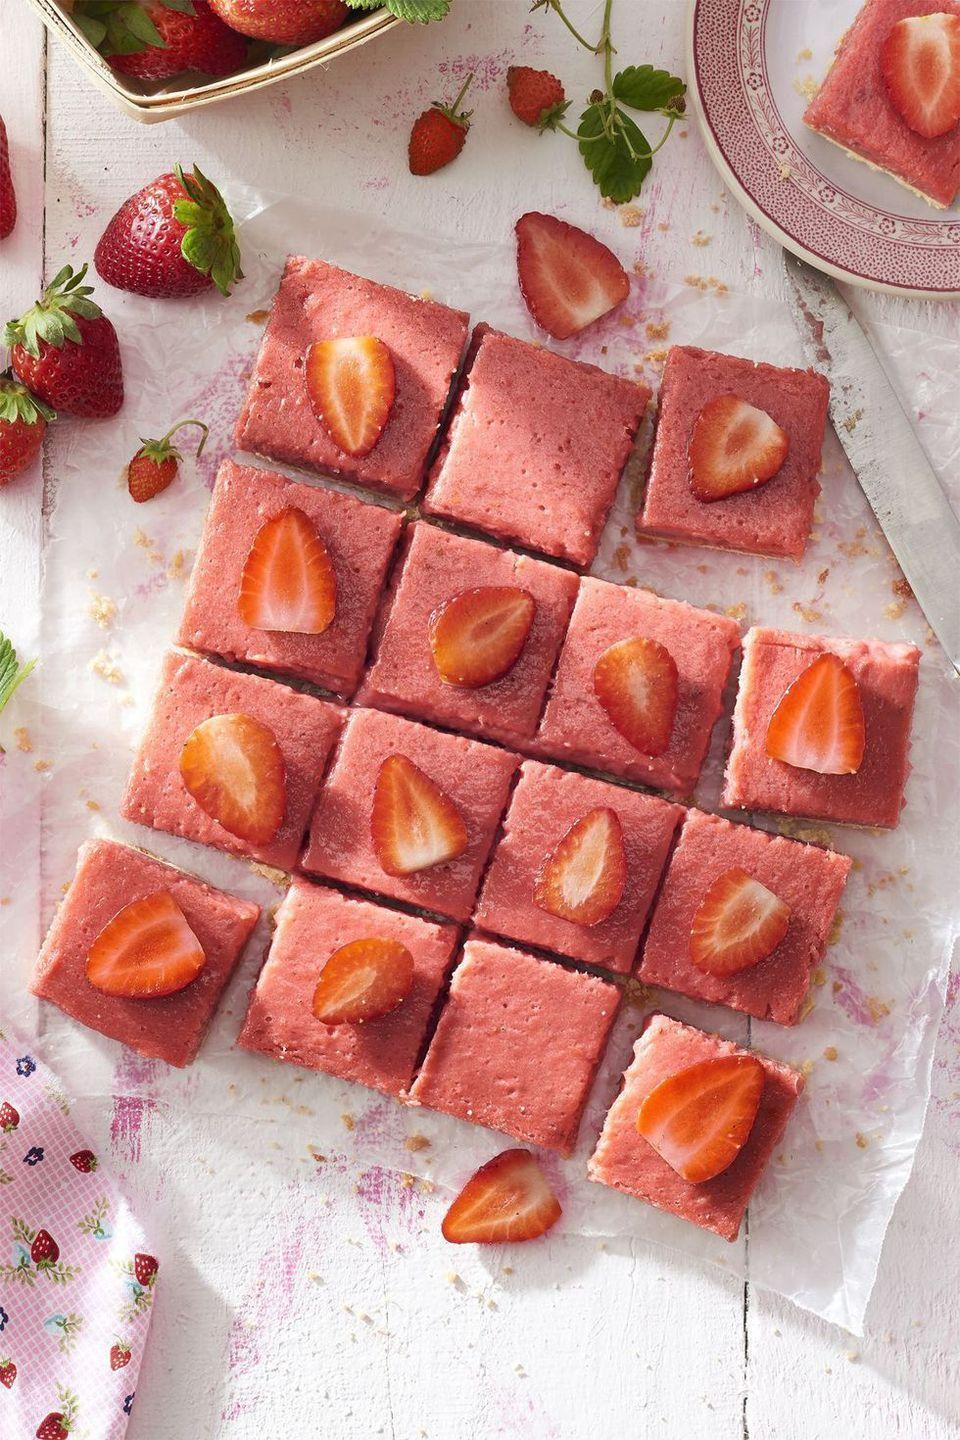 "<p>Strawberry season is here! Get your fix of April's finest fruit with these pretty <em>and </em>pink shortbread bars. </p><p><em><a href=""https://www.countryliving.com/food-drinks/recipes/a41984/strawberry-rhubarb-shortbread-bars-recipe/"" rel=""nofollow noopener"" target=""_blank"" data-ylk=""slk:Get the recipe from Country Living »"" class=""link rapid-noclick-resp"">Get the recipe from Country Living »</a></em> </p>"